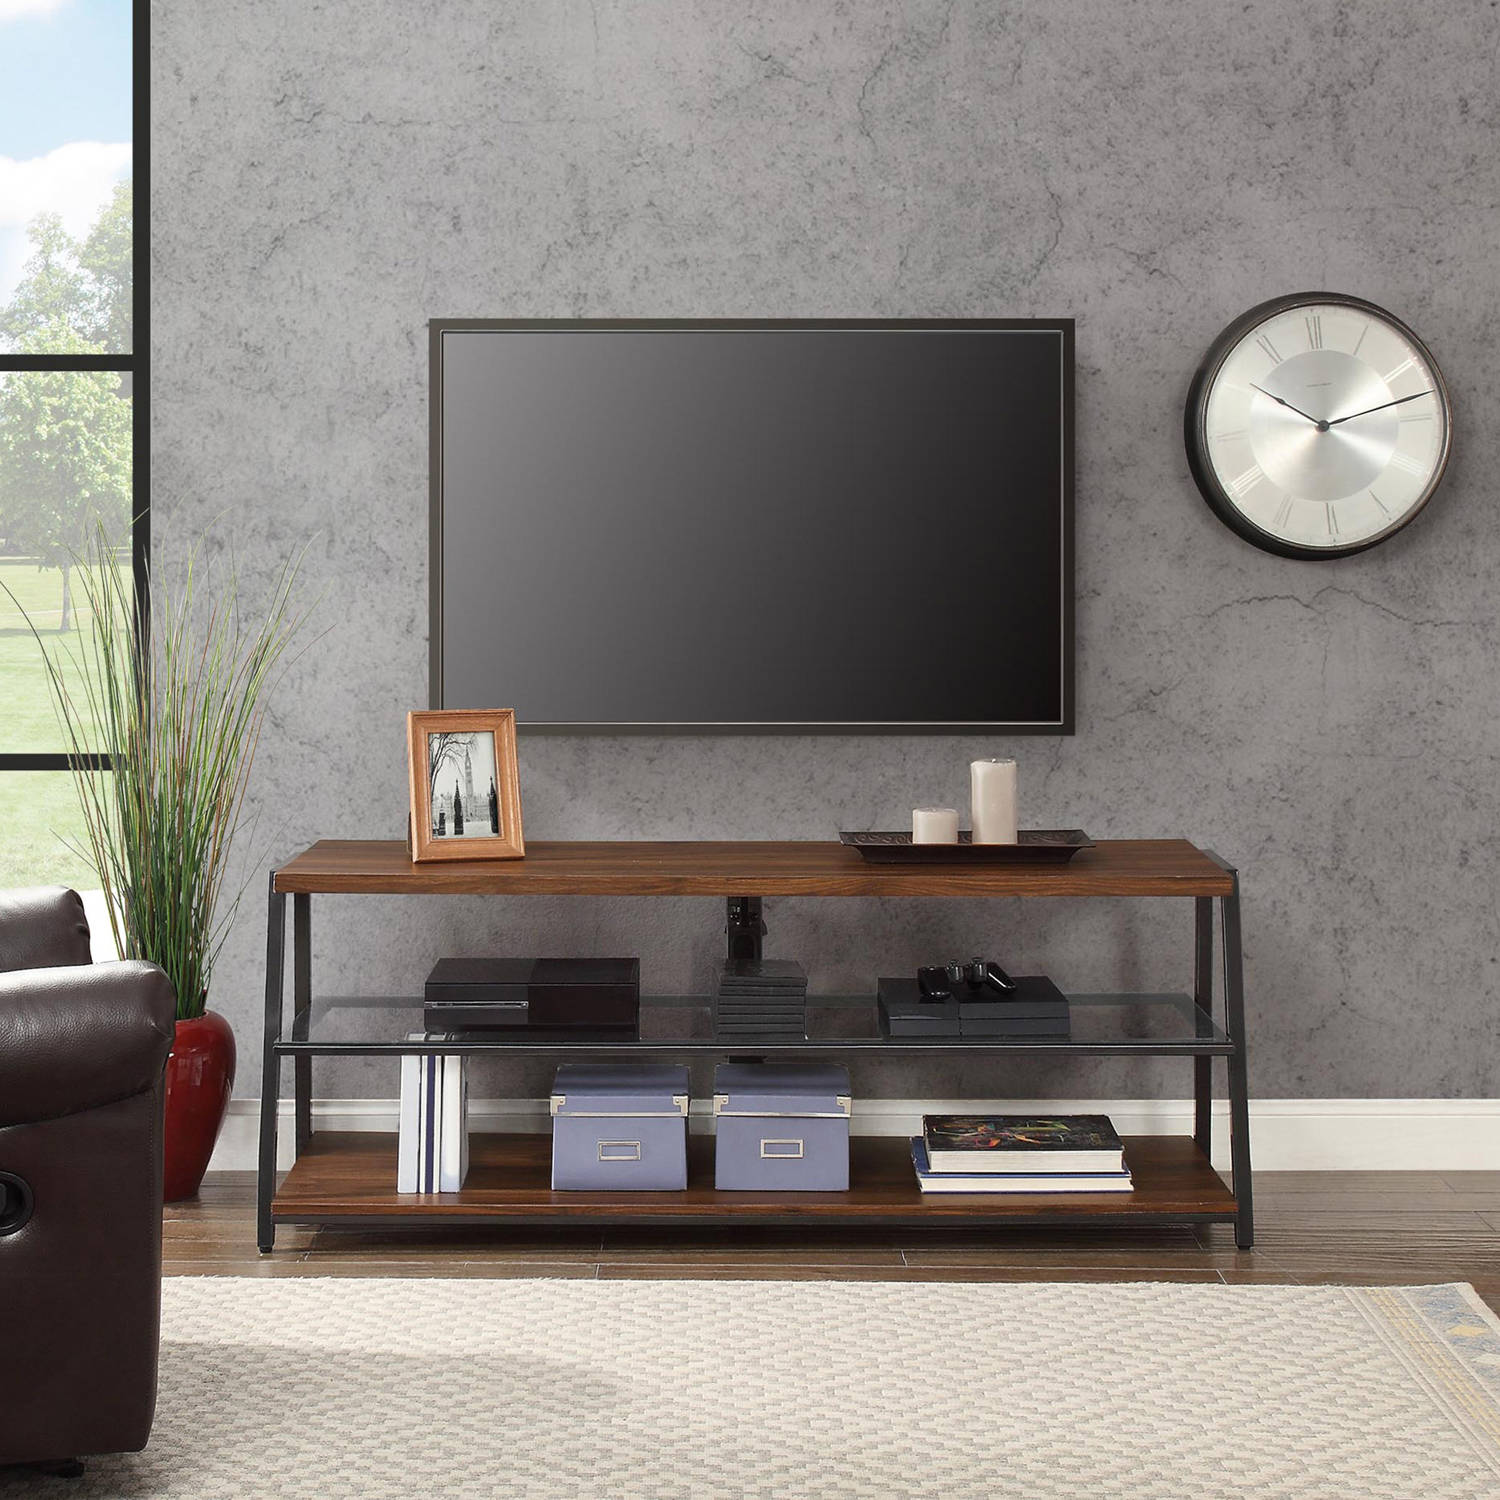 Mainstays Arris 3 In 1 Tv Stand For Televisions Up To 70 Perfect